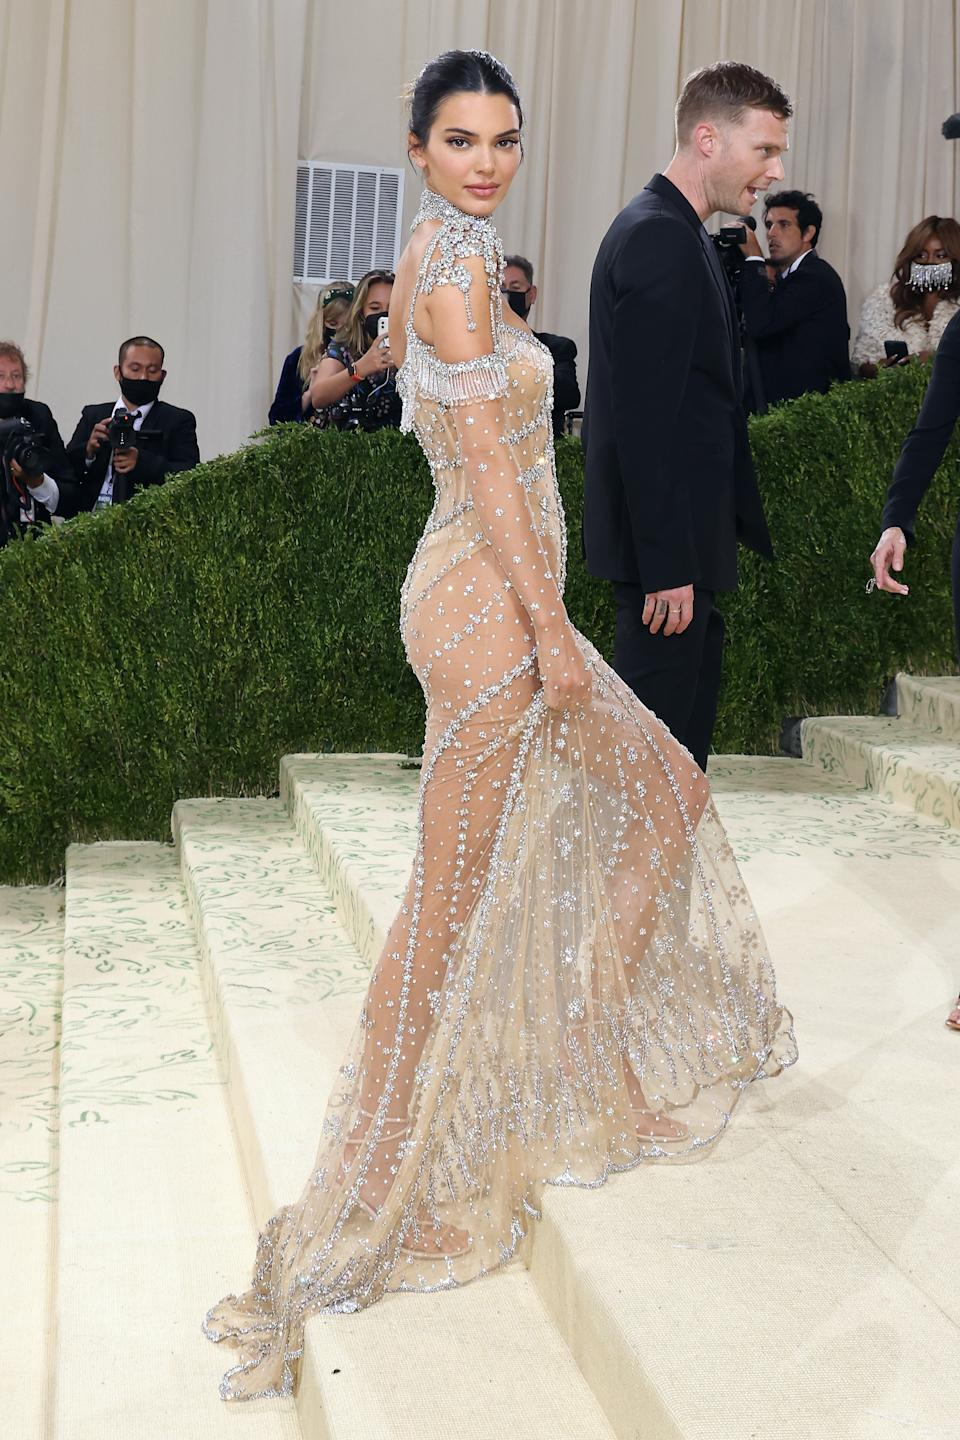 Kendall Jenner wears a sheer silver dress at the 2021 Met Gala benefit